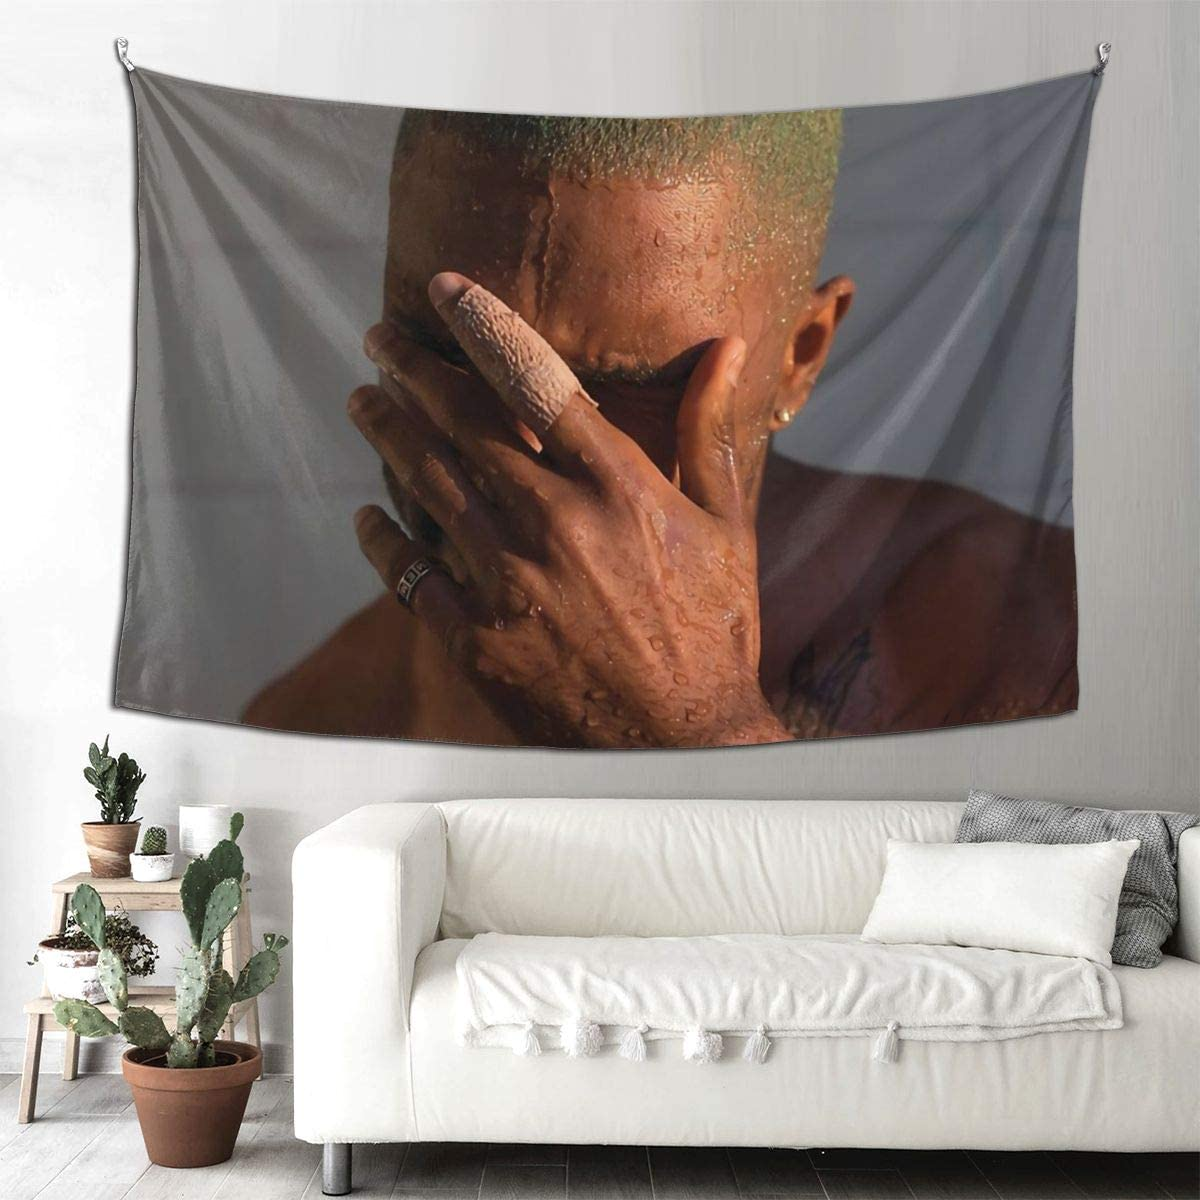 Gyaiaer Frank Ocean Blond Tapestry Boutique Wall Hanging Tapestry Vintage Tapestry Wall Tapestry Micro Fiber Peach Home Decor 90x60inch